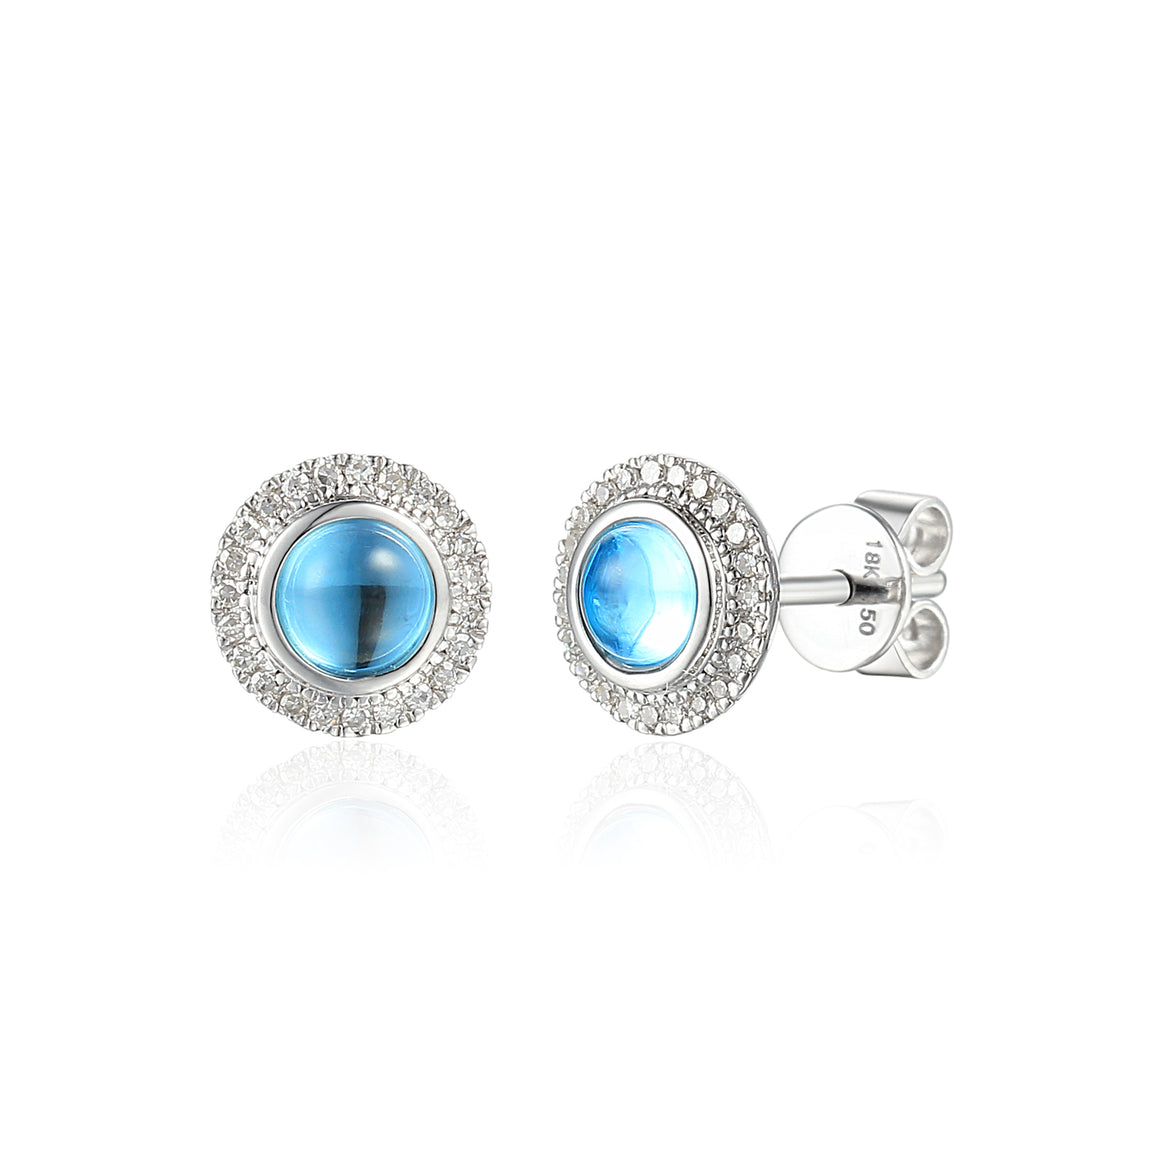 18ct White Gold Round Cabuchon Blue Topaz and Diamond Earring